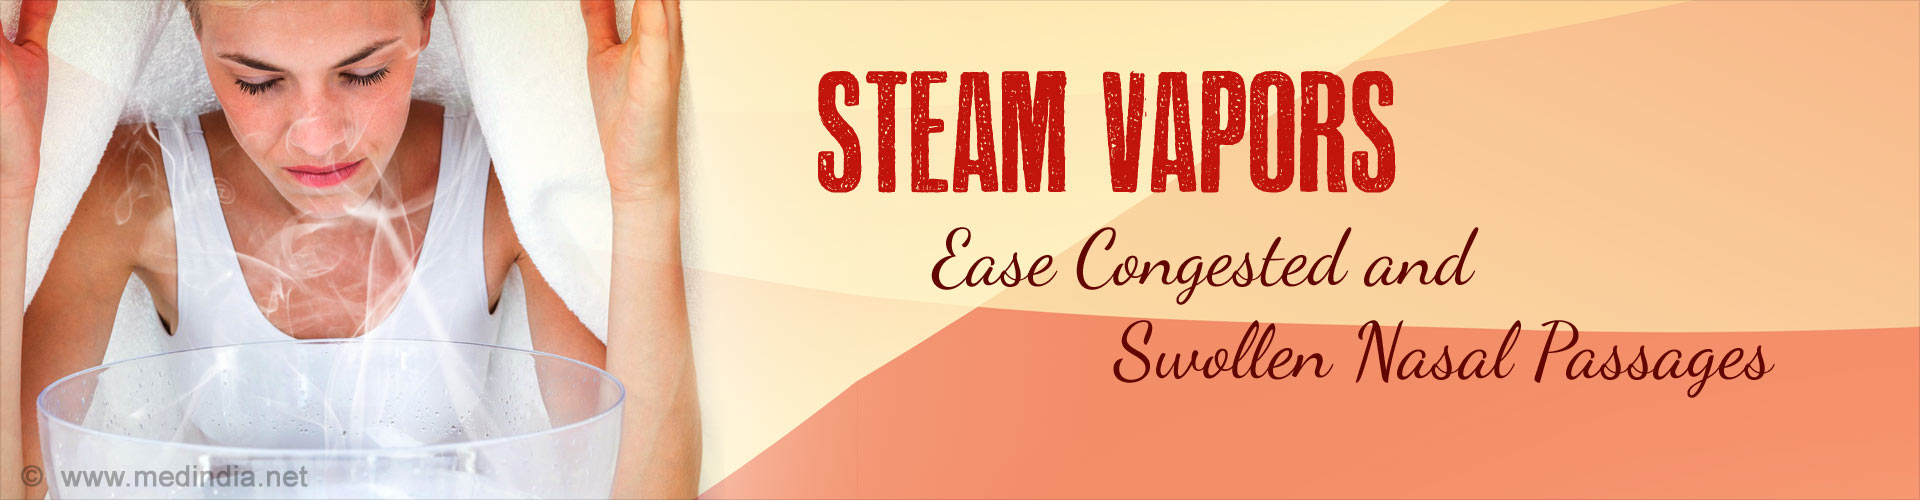 Steam Vapors Ease Congested and Swollen Nasal Passages